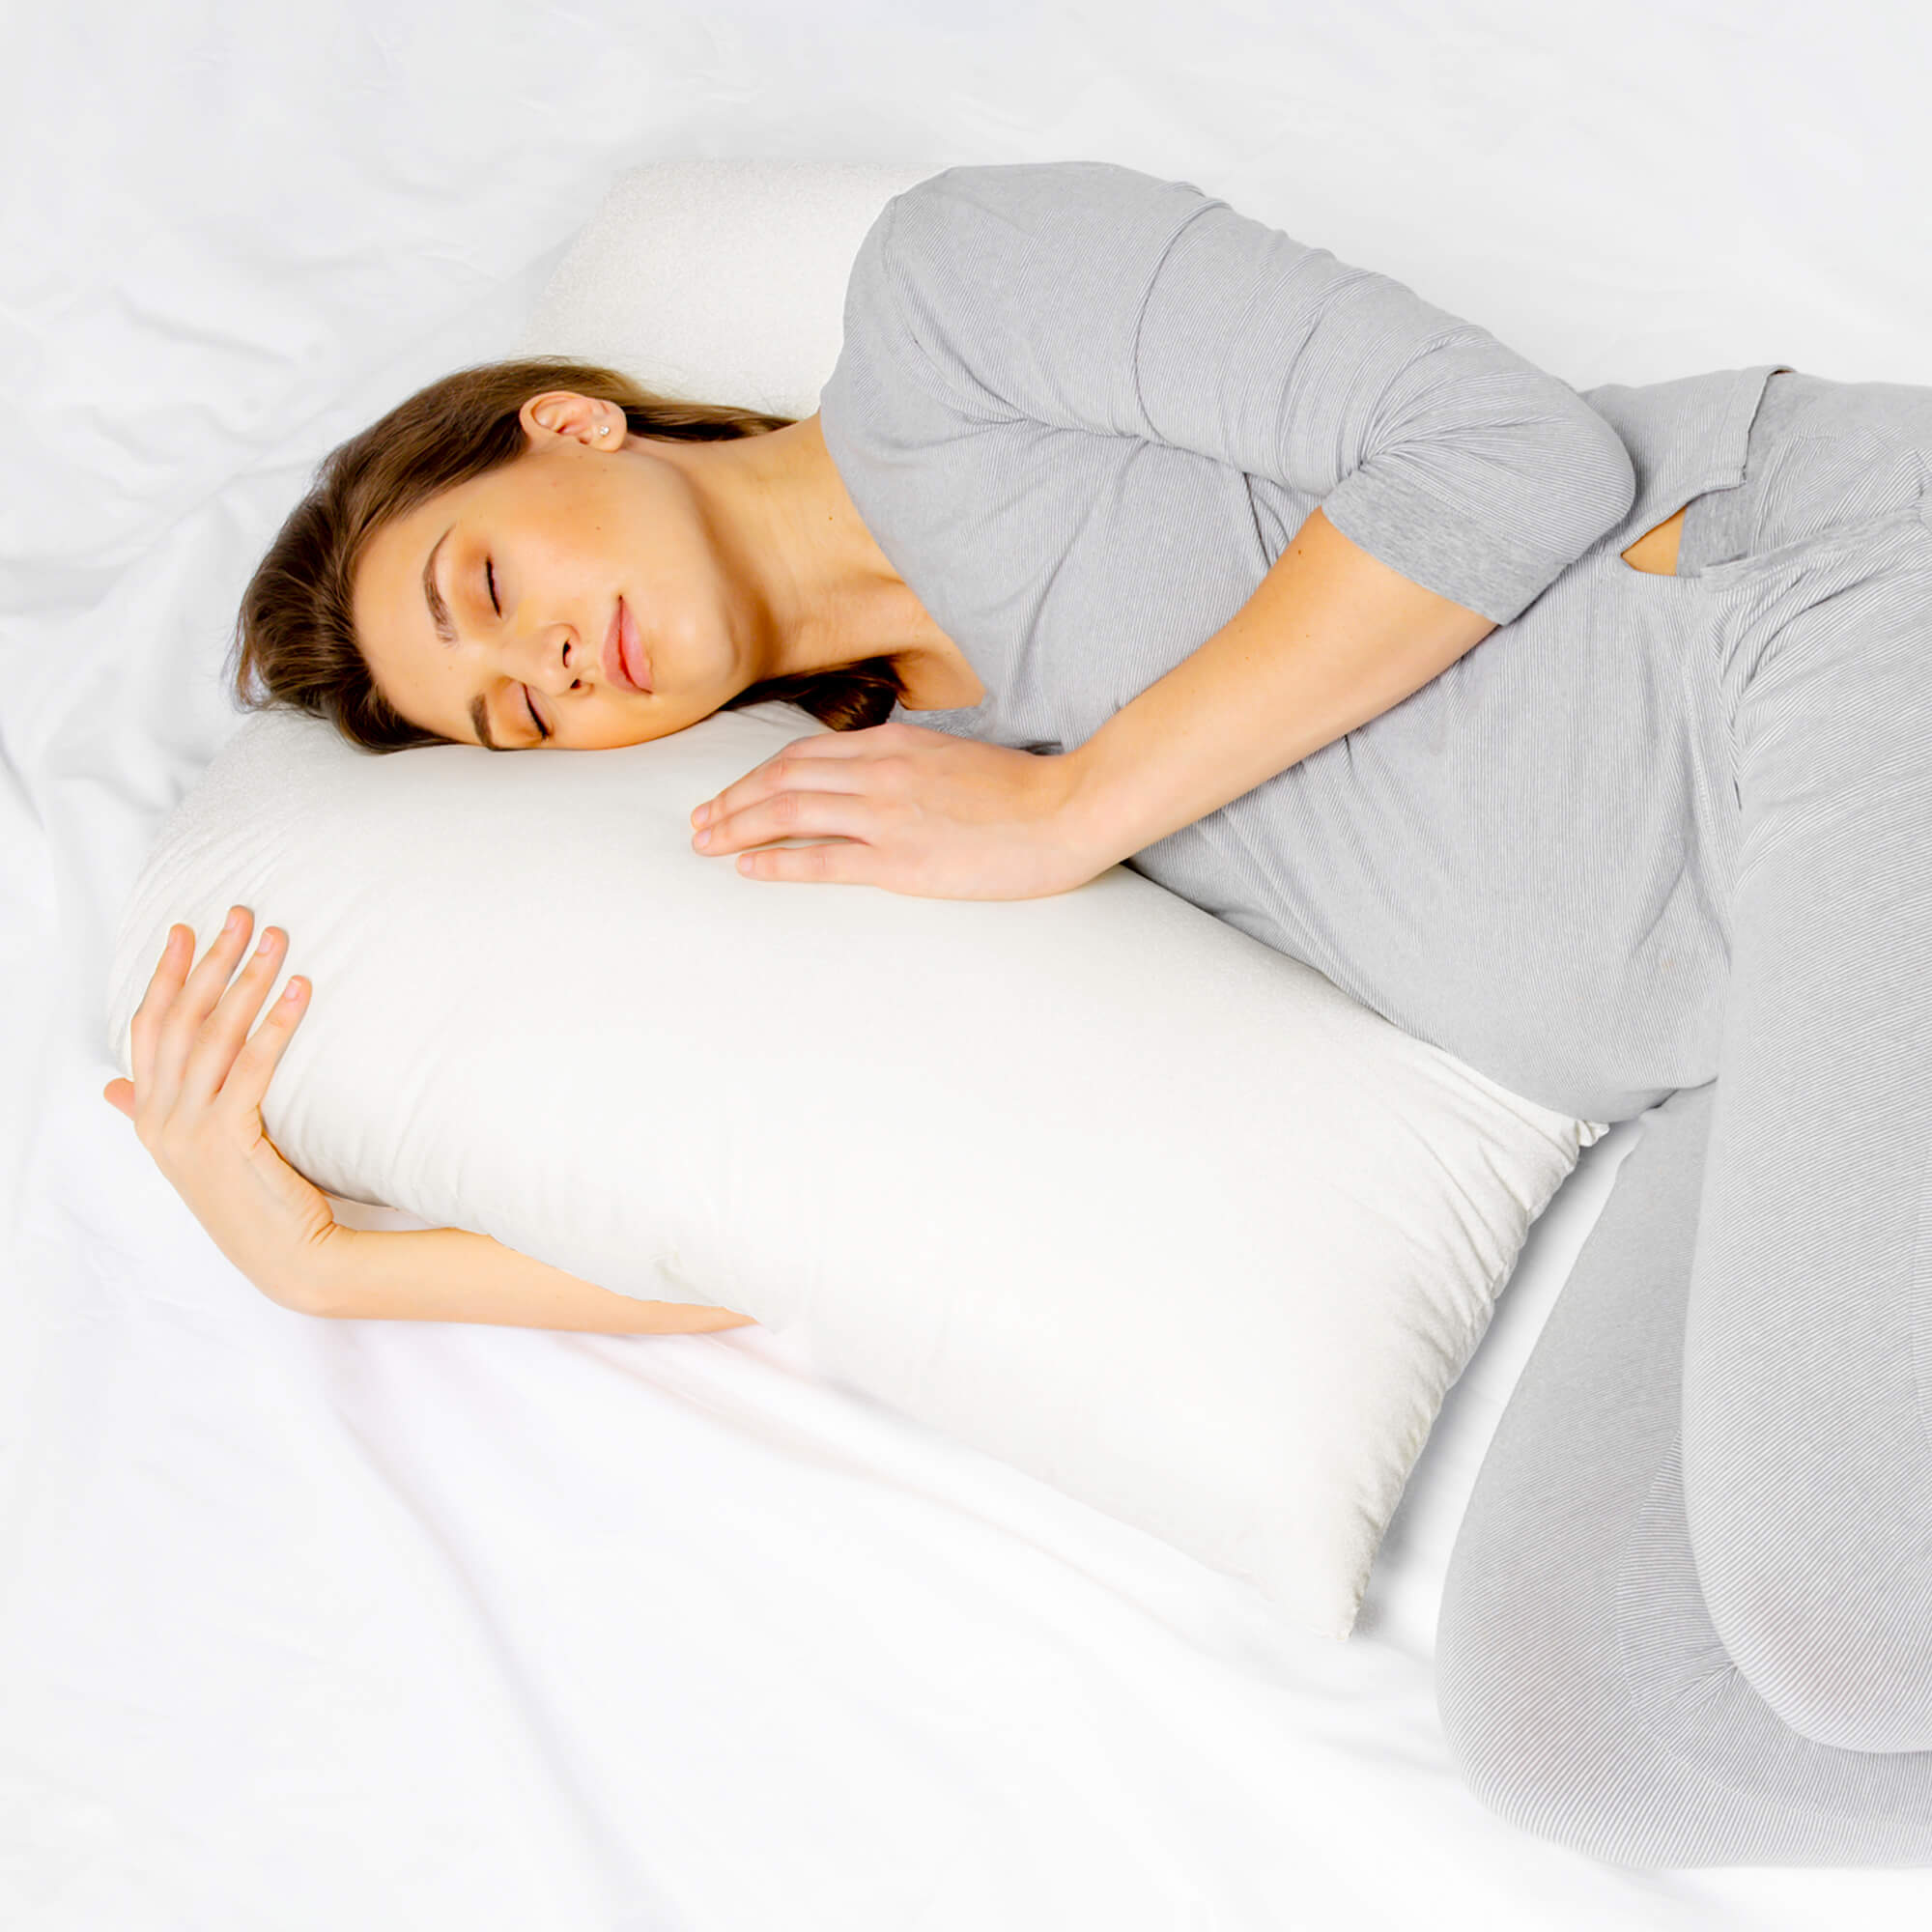 Kally V-Support Pillow